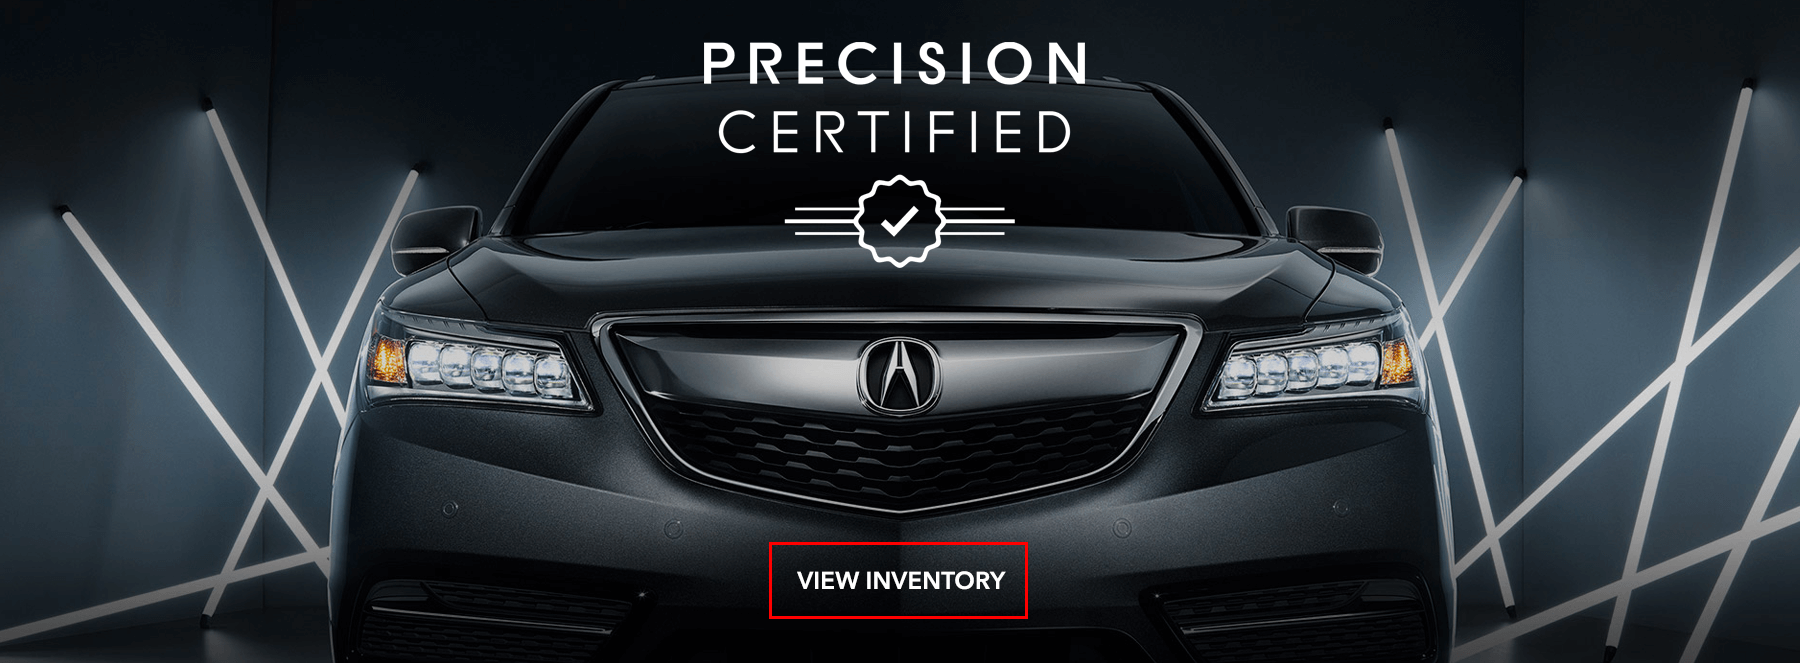 Acura-Precision-Certified-Slider